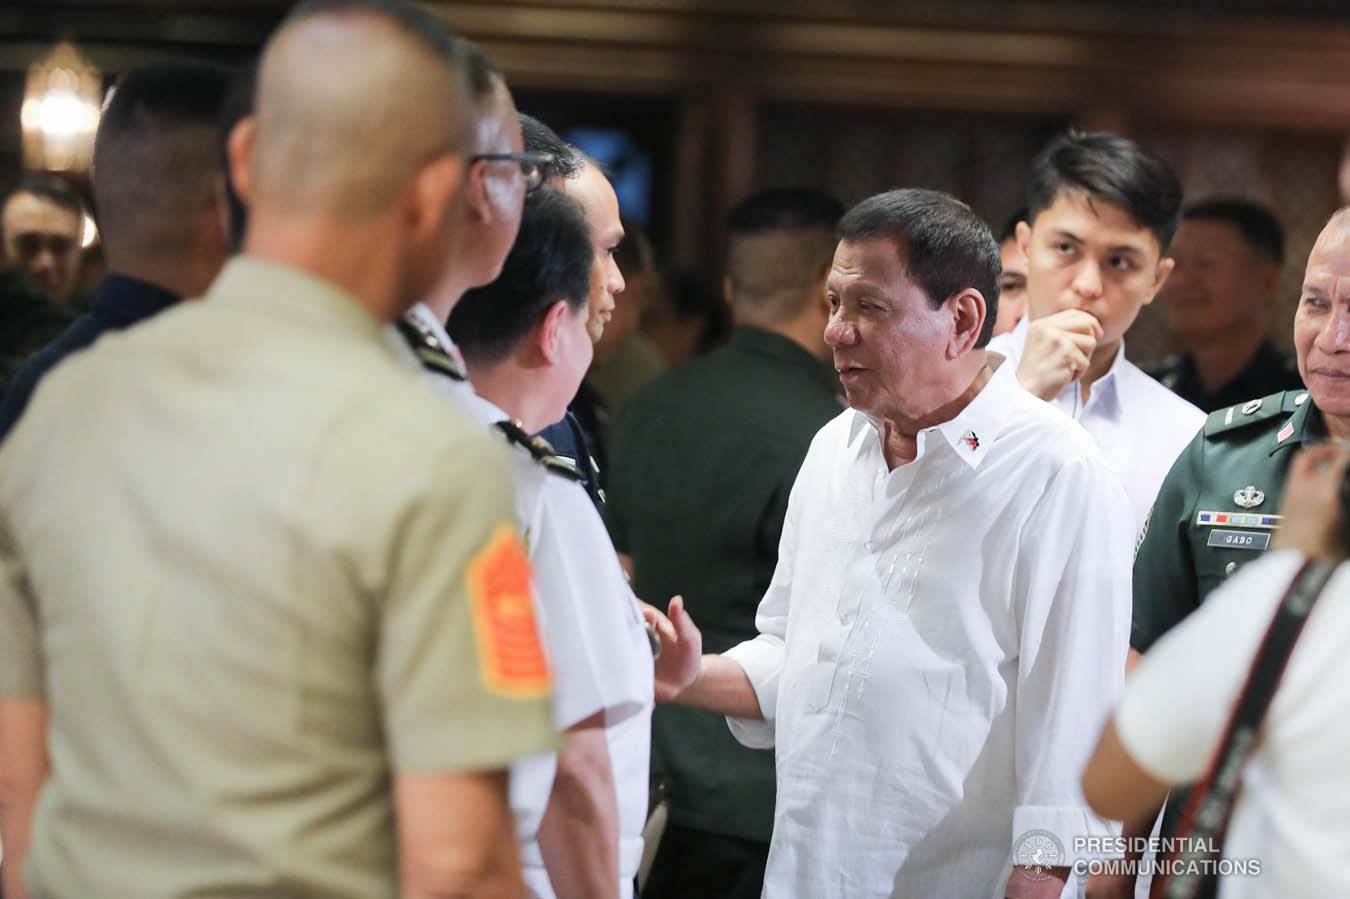 President Rodrigo Roa Duterte greets an officer of the Armed Forces of the Philippines during the Thanksgiving gathering he hosted for the AFP Council of the Sergeants Major at the Malacañan Palace on December 10, 2019. ALFRED FRIAS/PRESIDENTIAL PHOTO